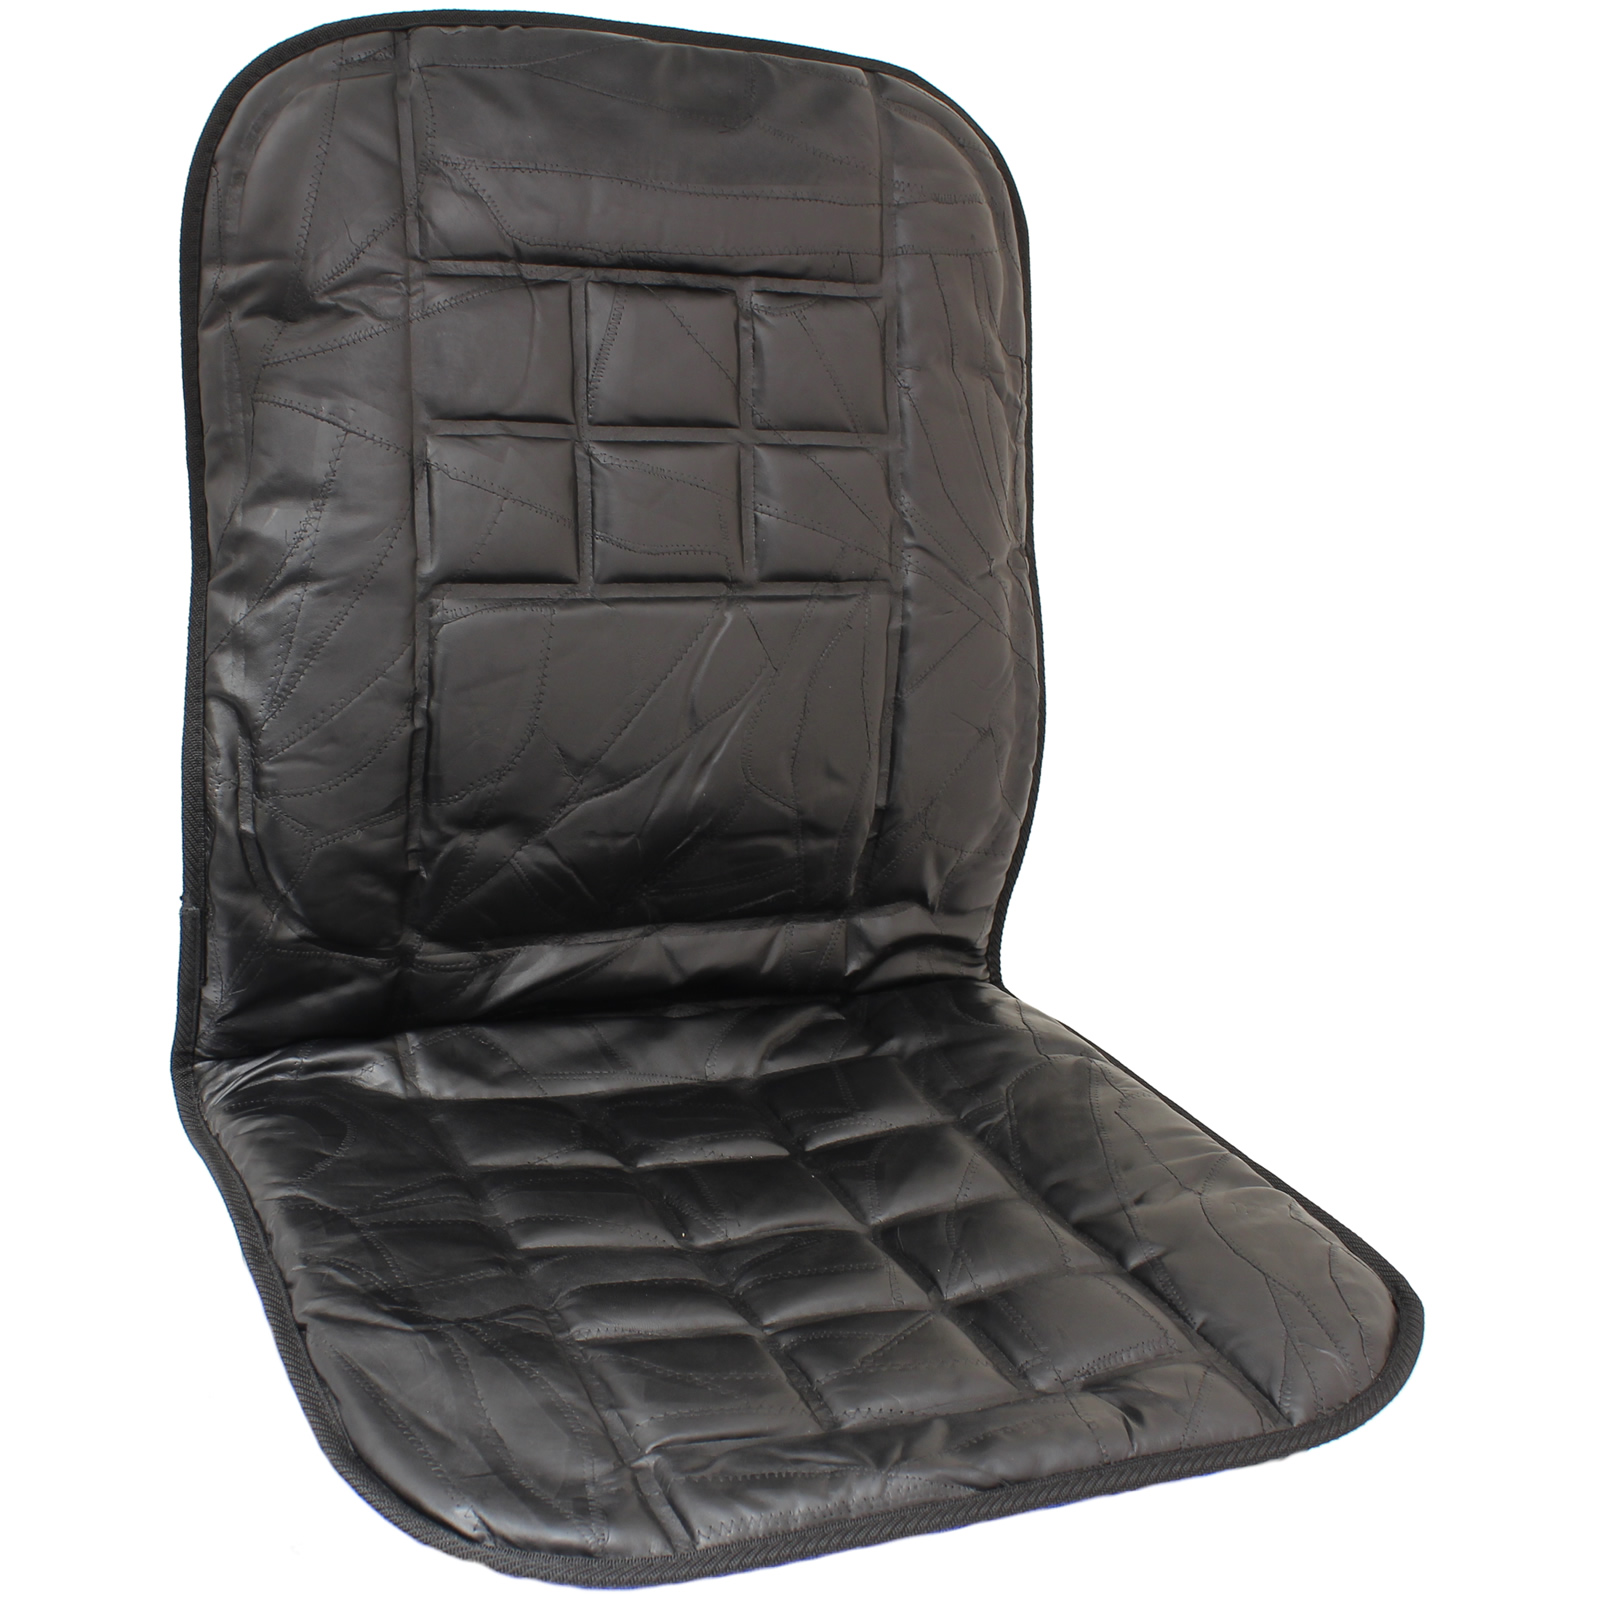 leather car front seat cushion protector orthopaedic back support massage cover ebay. Black Bedroom Furniture Sets. Home Design Ideas